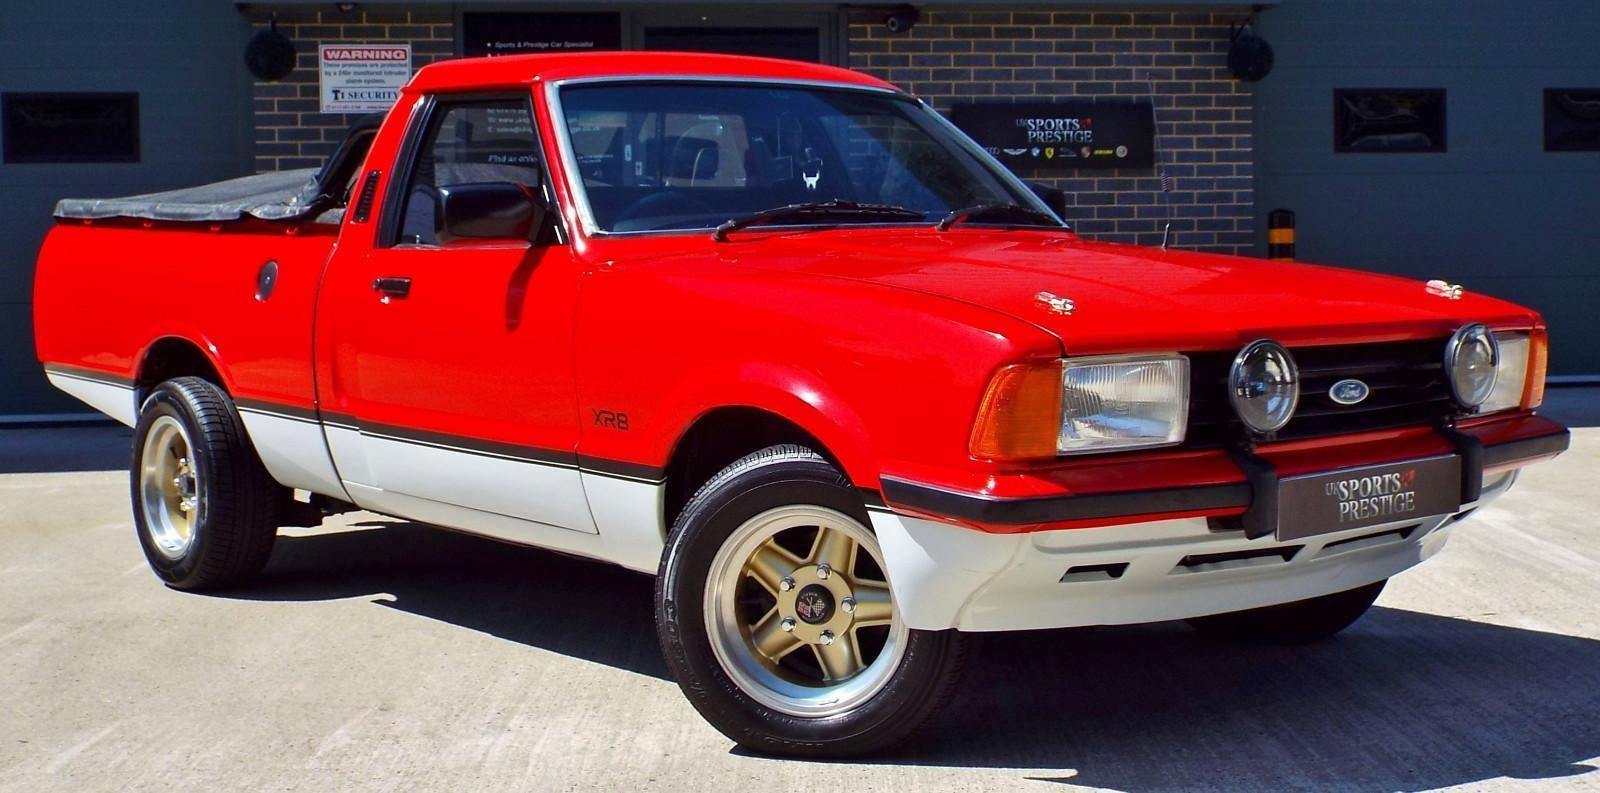 1981 Ford Cortina 5 0 V8 P100 Xr8 Pick Up Ebay Classic Cars